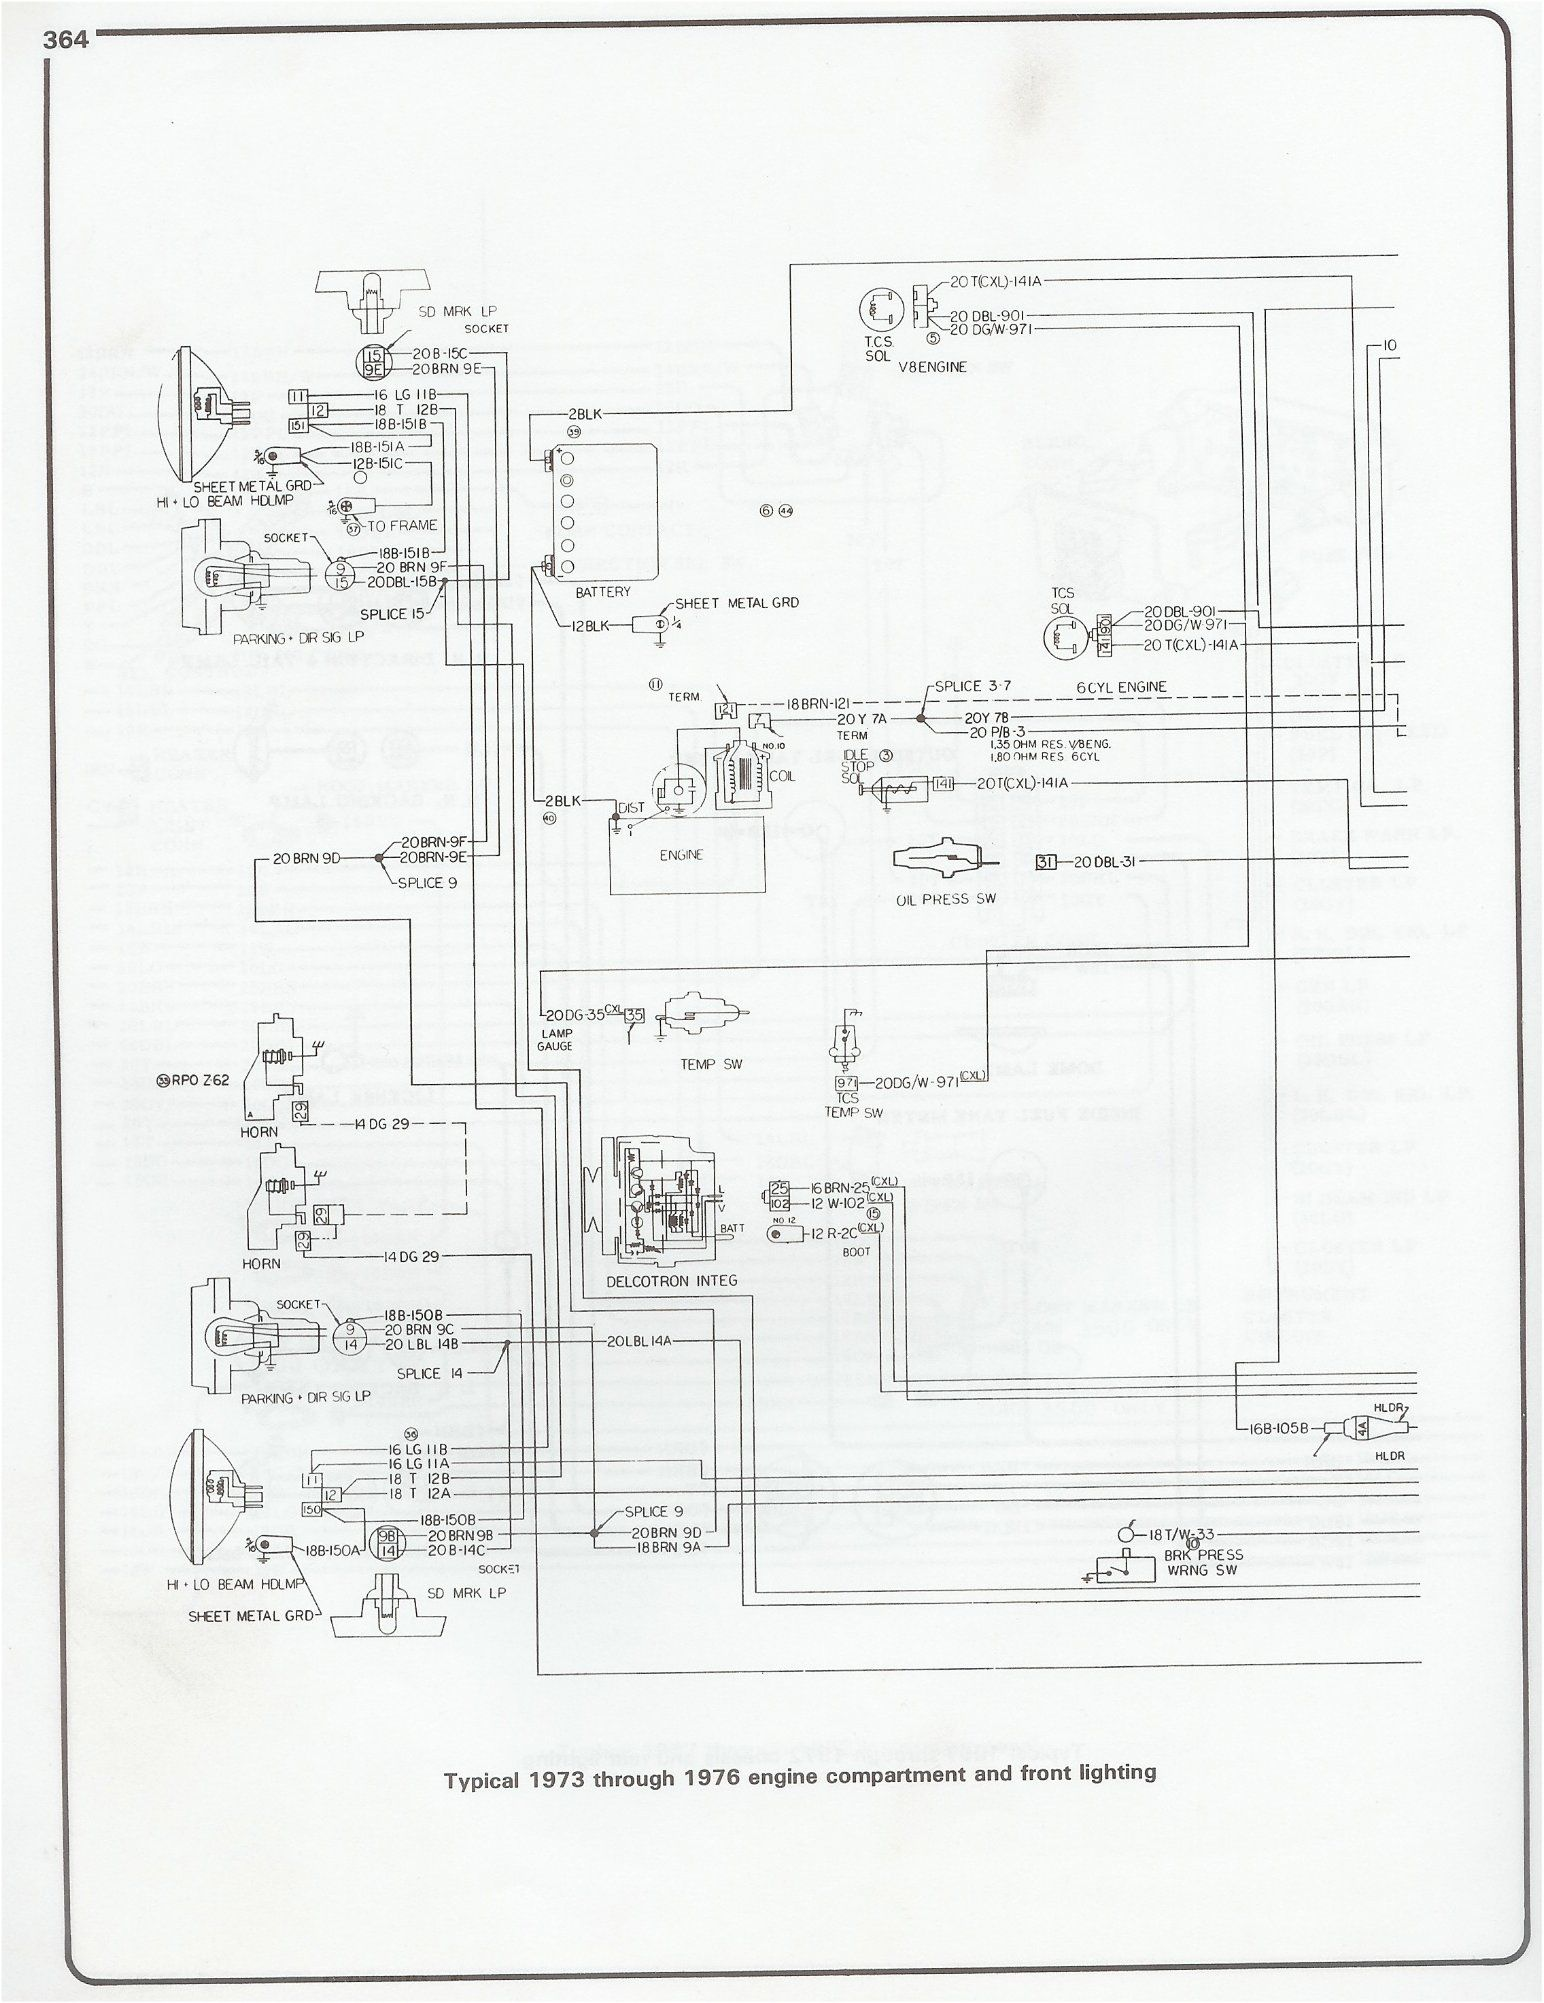 wiring diagram for 1960 chevy pickup